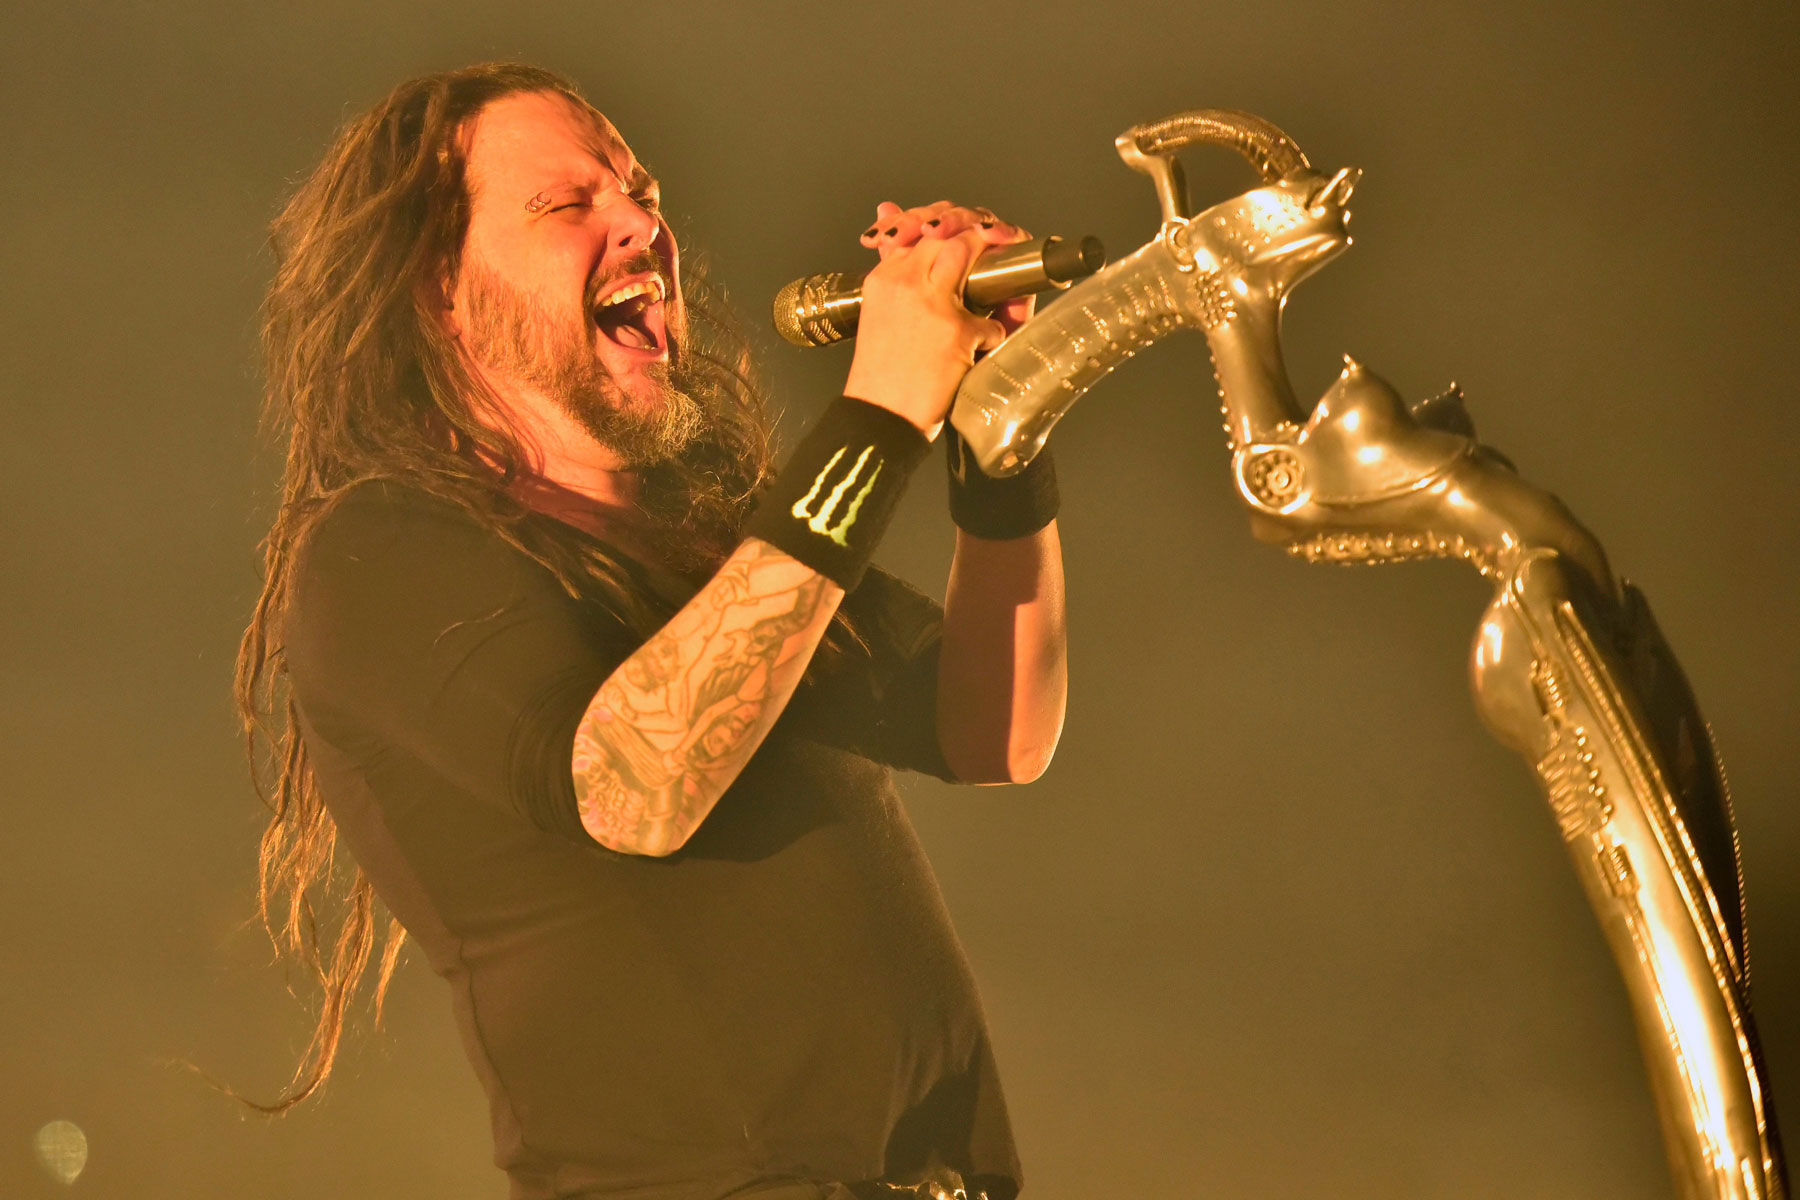 See Korn's Depiction of Toxic Self-Isolation in 'Can You Hear Me' Video - EpicNews